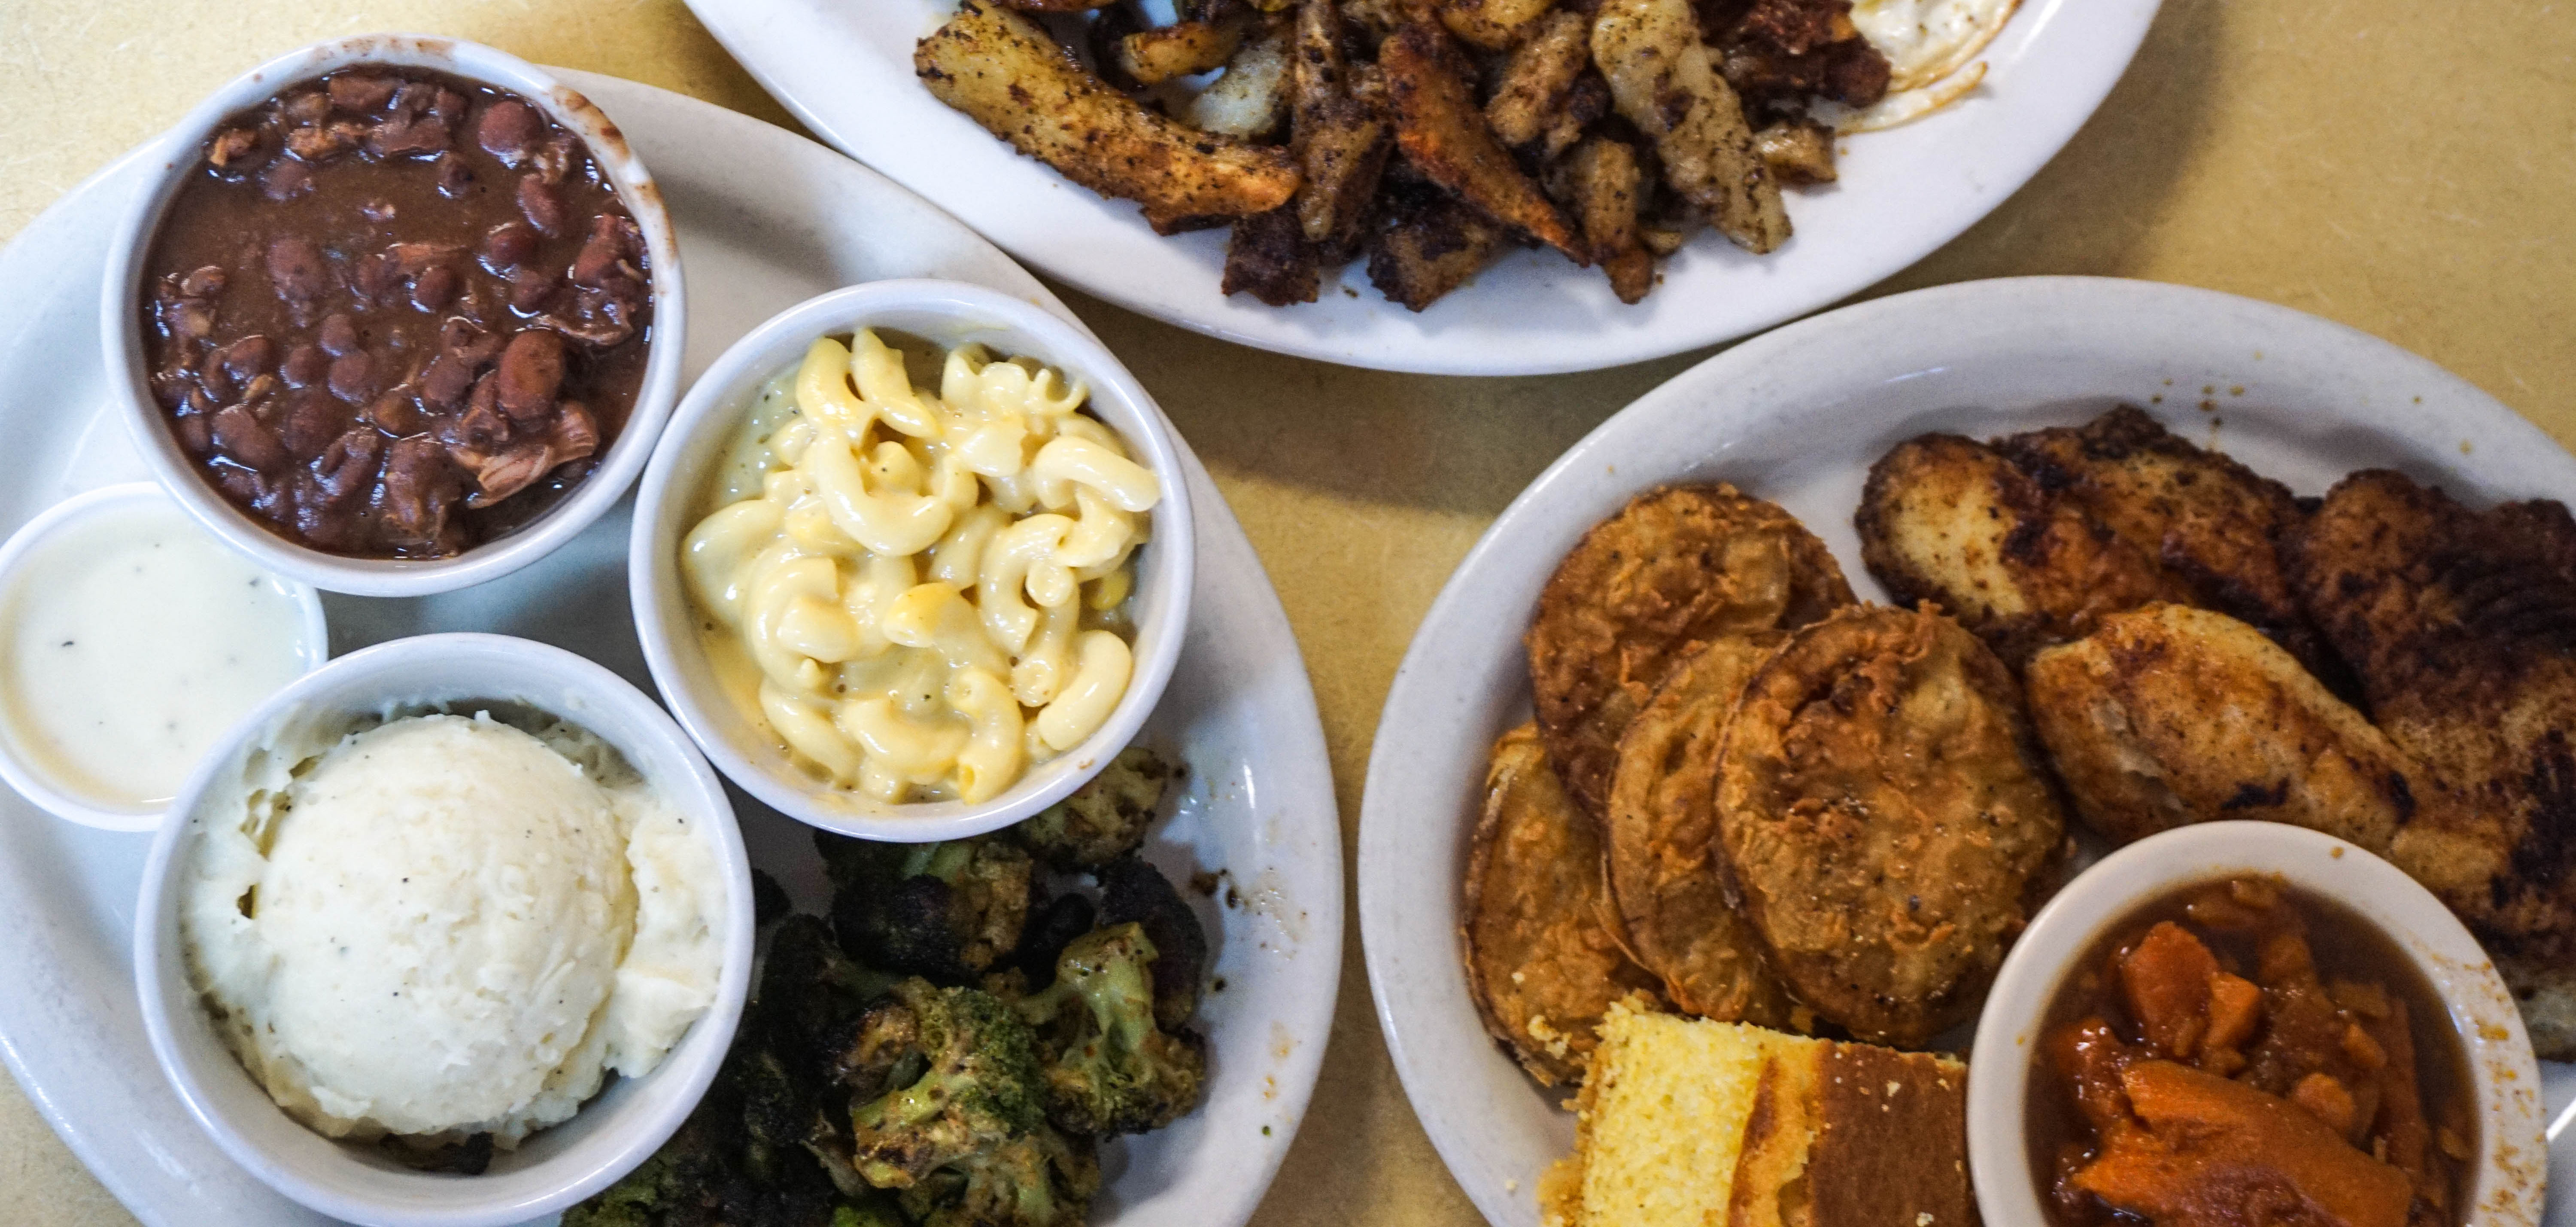 Two lunches at Sweet Lisas with mac and cheese, beans, mashed potatoes, fried green tomatoes, candied yams, chicken, and cornbread.